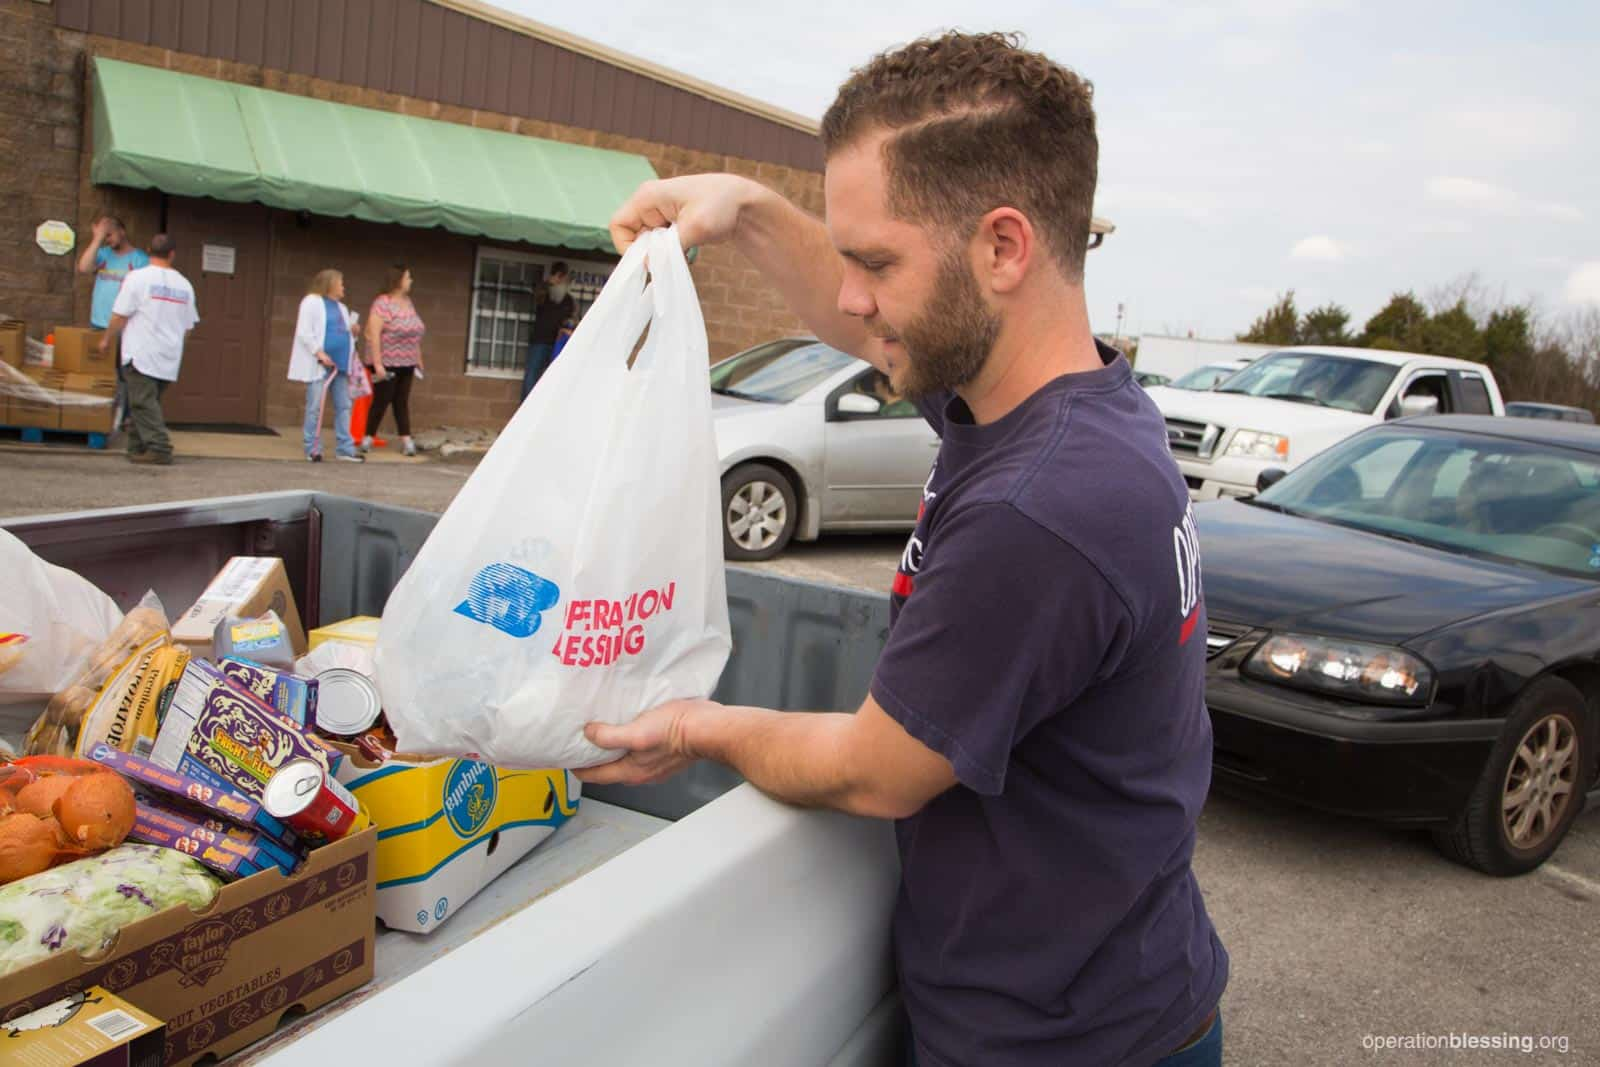 An OBI worker packs groceries into the truck of a family on the brink.